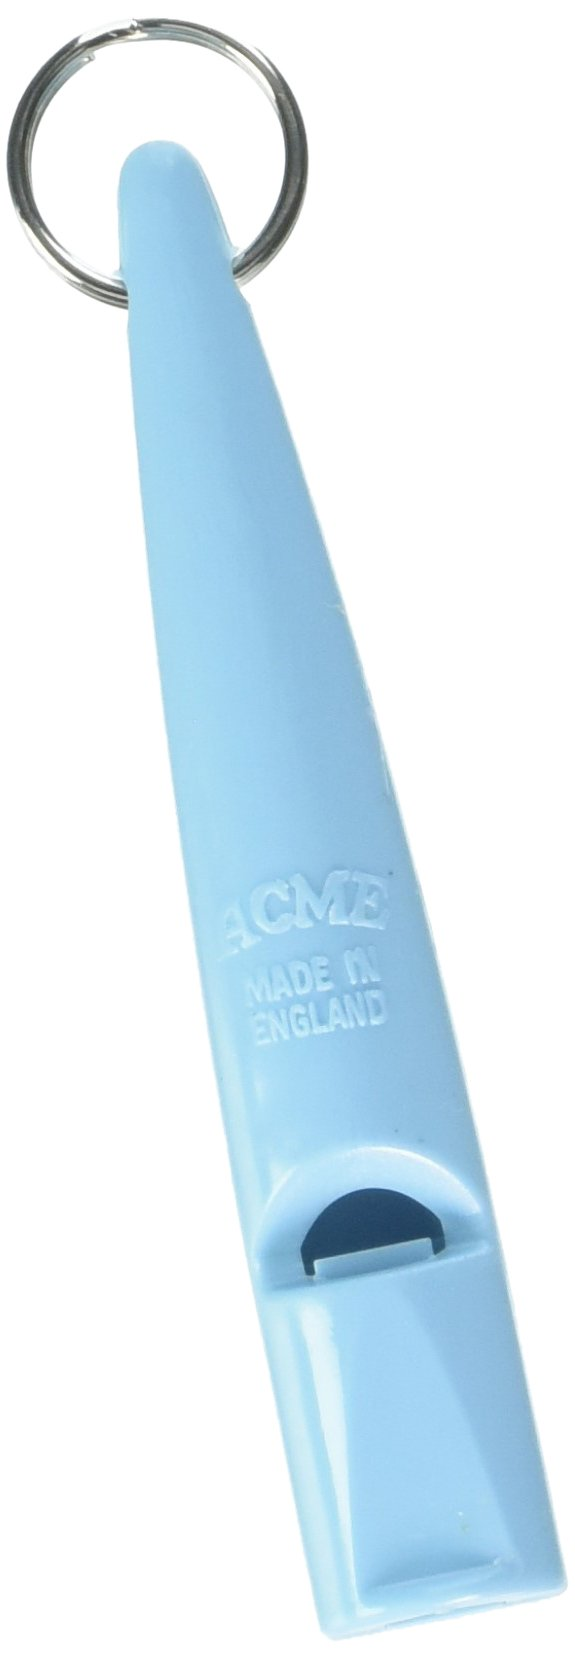 Acme 210.5 Working Dog Whistle - Baby Blue